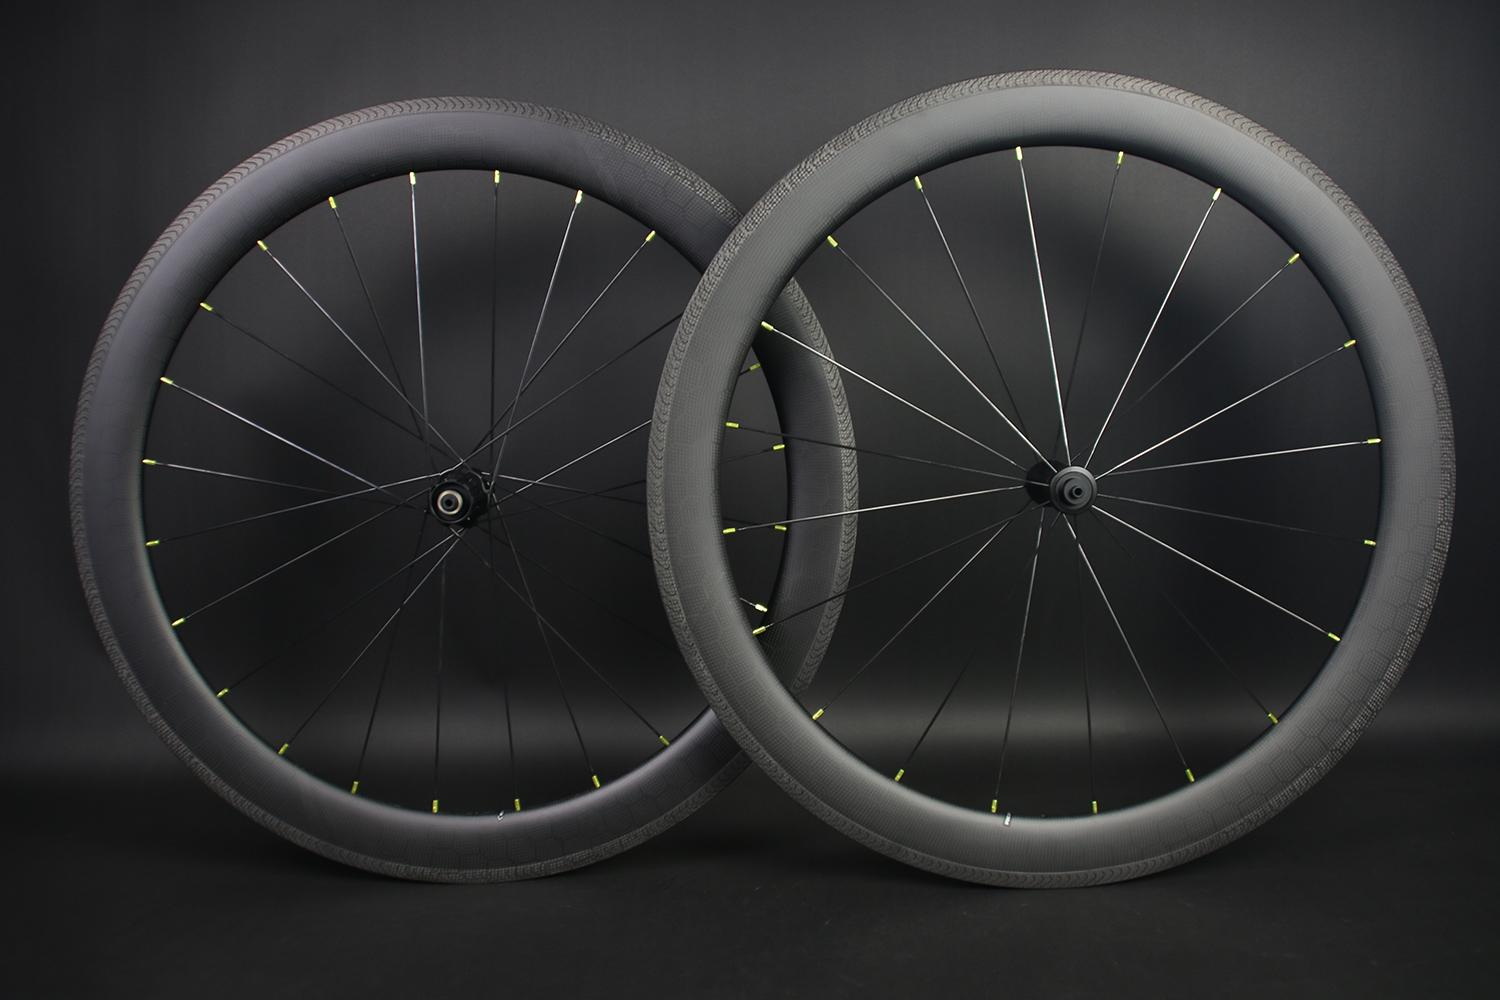 all-road-56mm-carbon-road-wheelset-700c